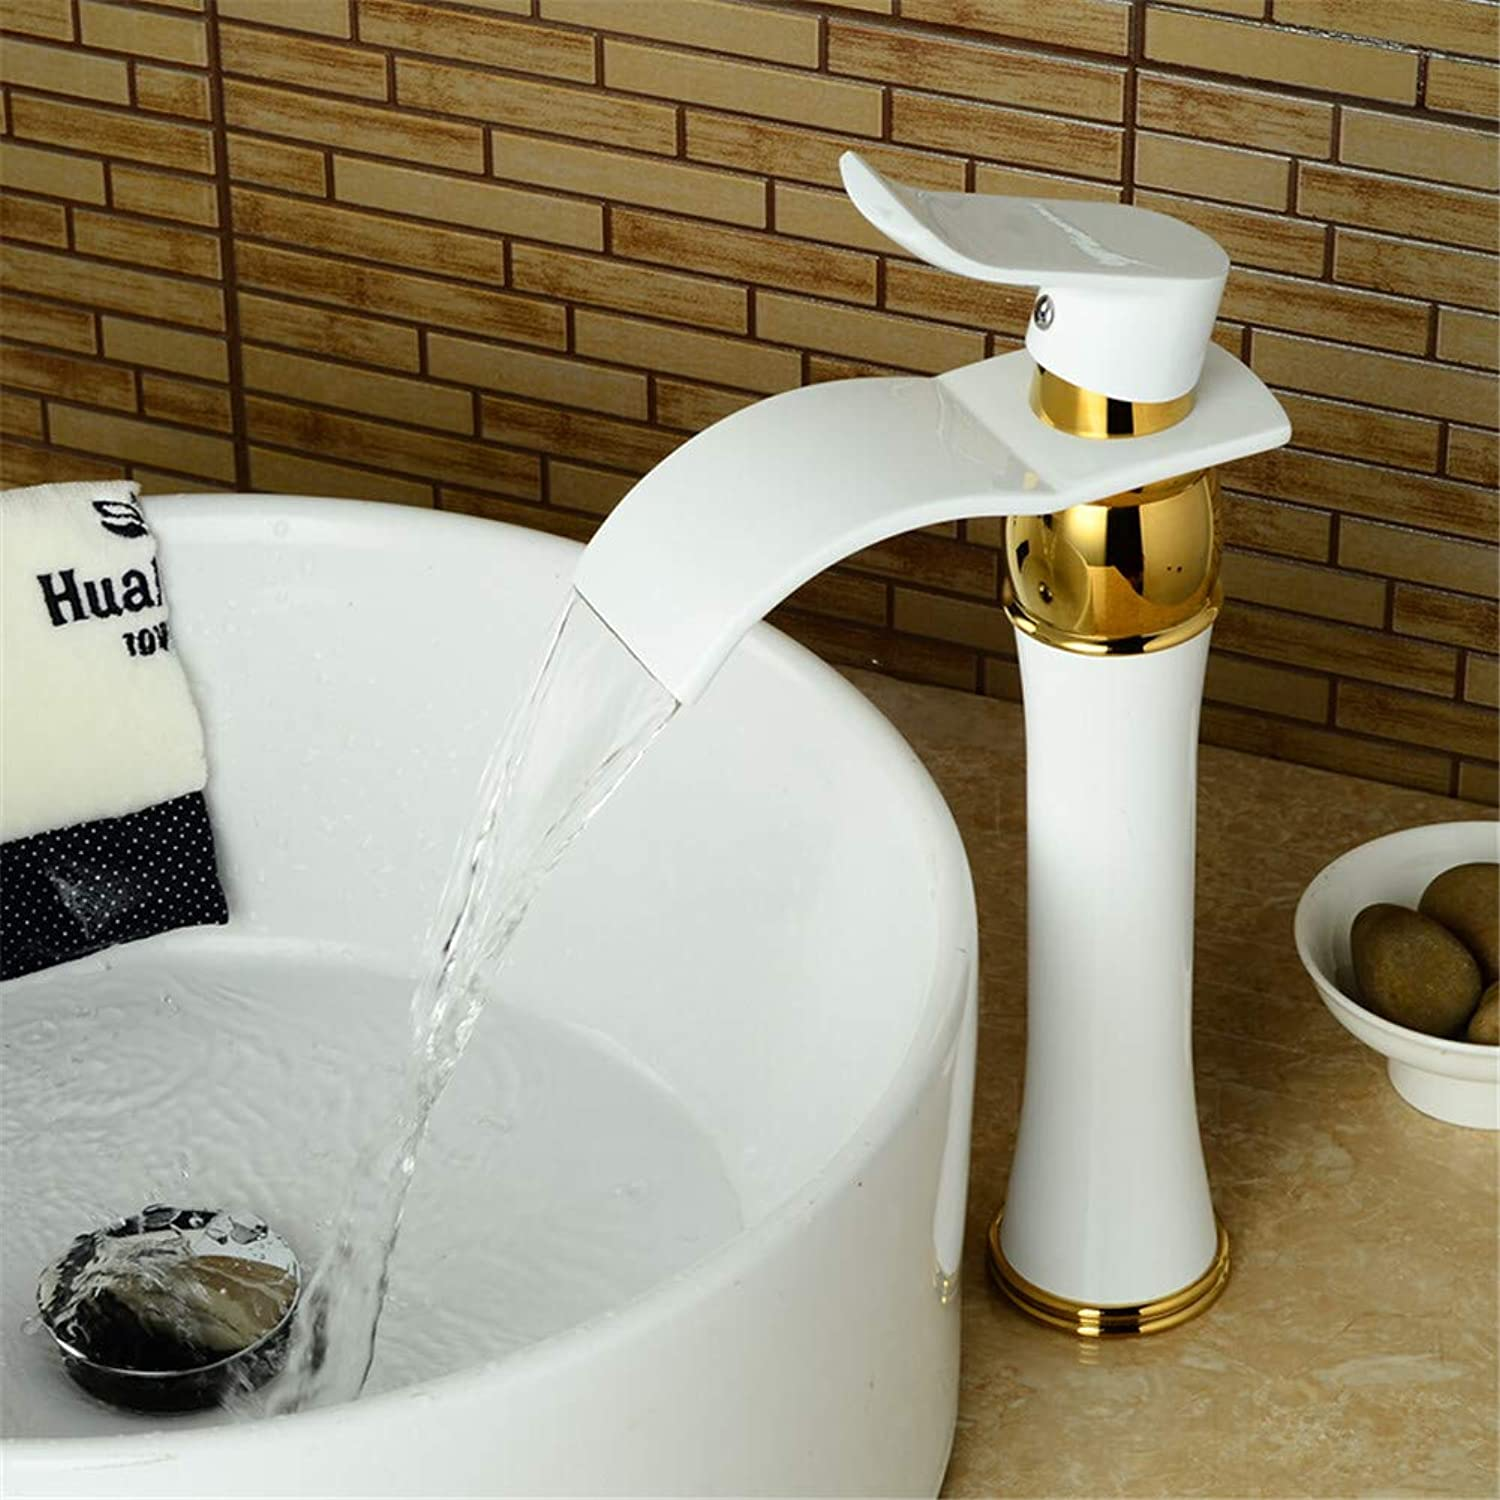 YAWEDA Tall golden Polished Basin Faucet Swivel Sink Mixer Tap Basin Faucet Finish Round Base White Paint Bathroom Sink Faucet